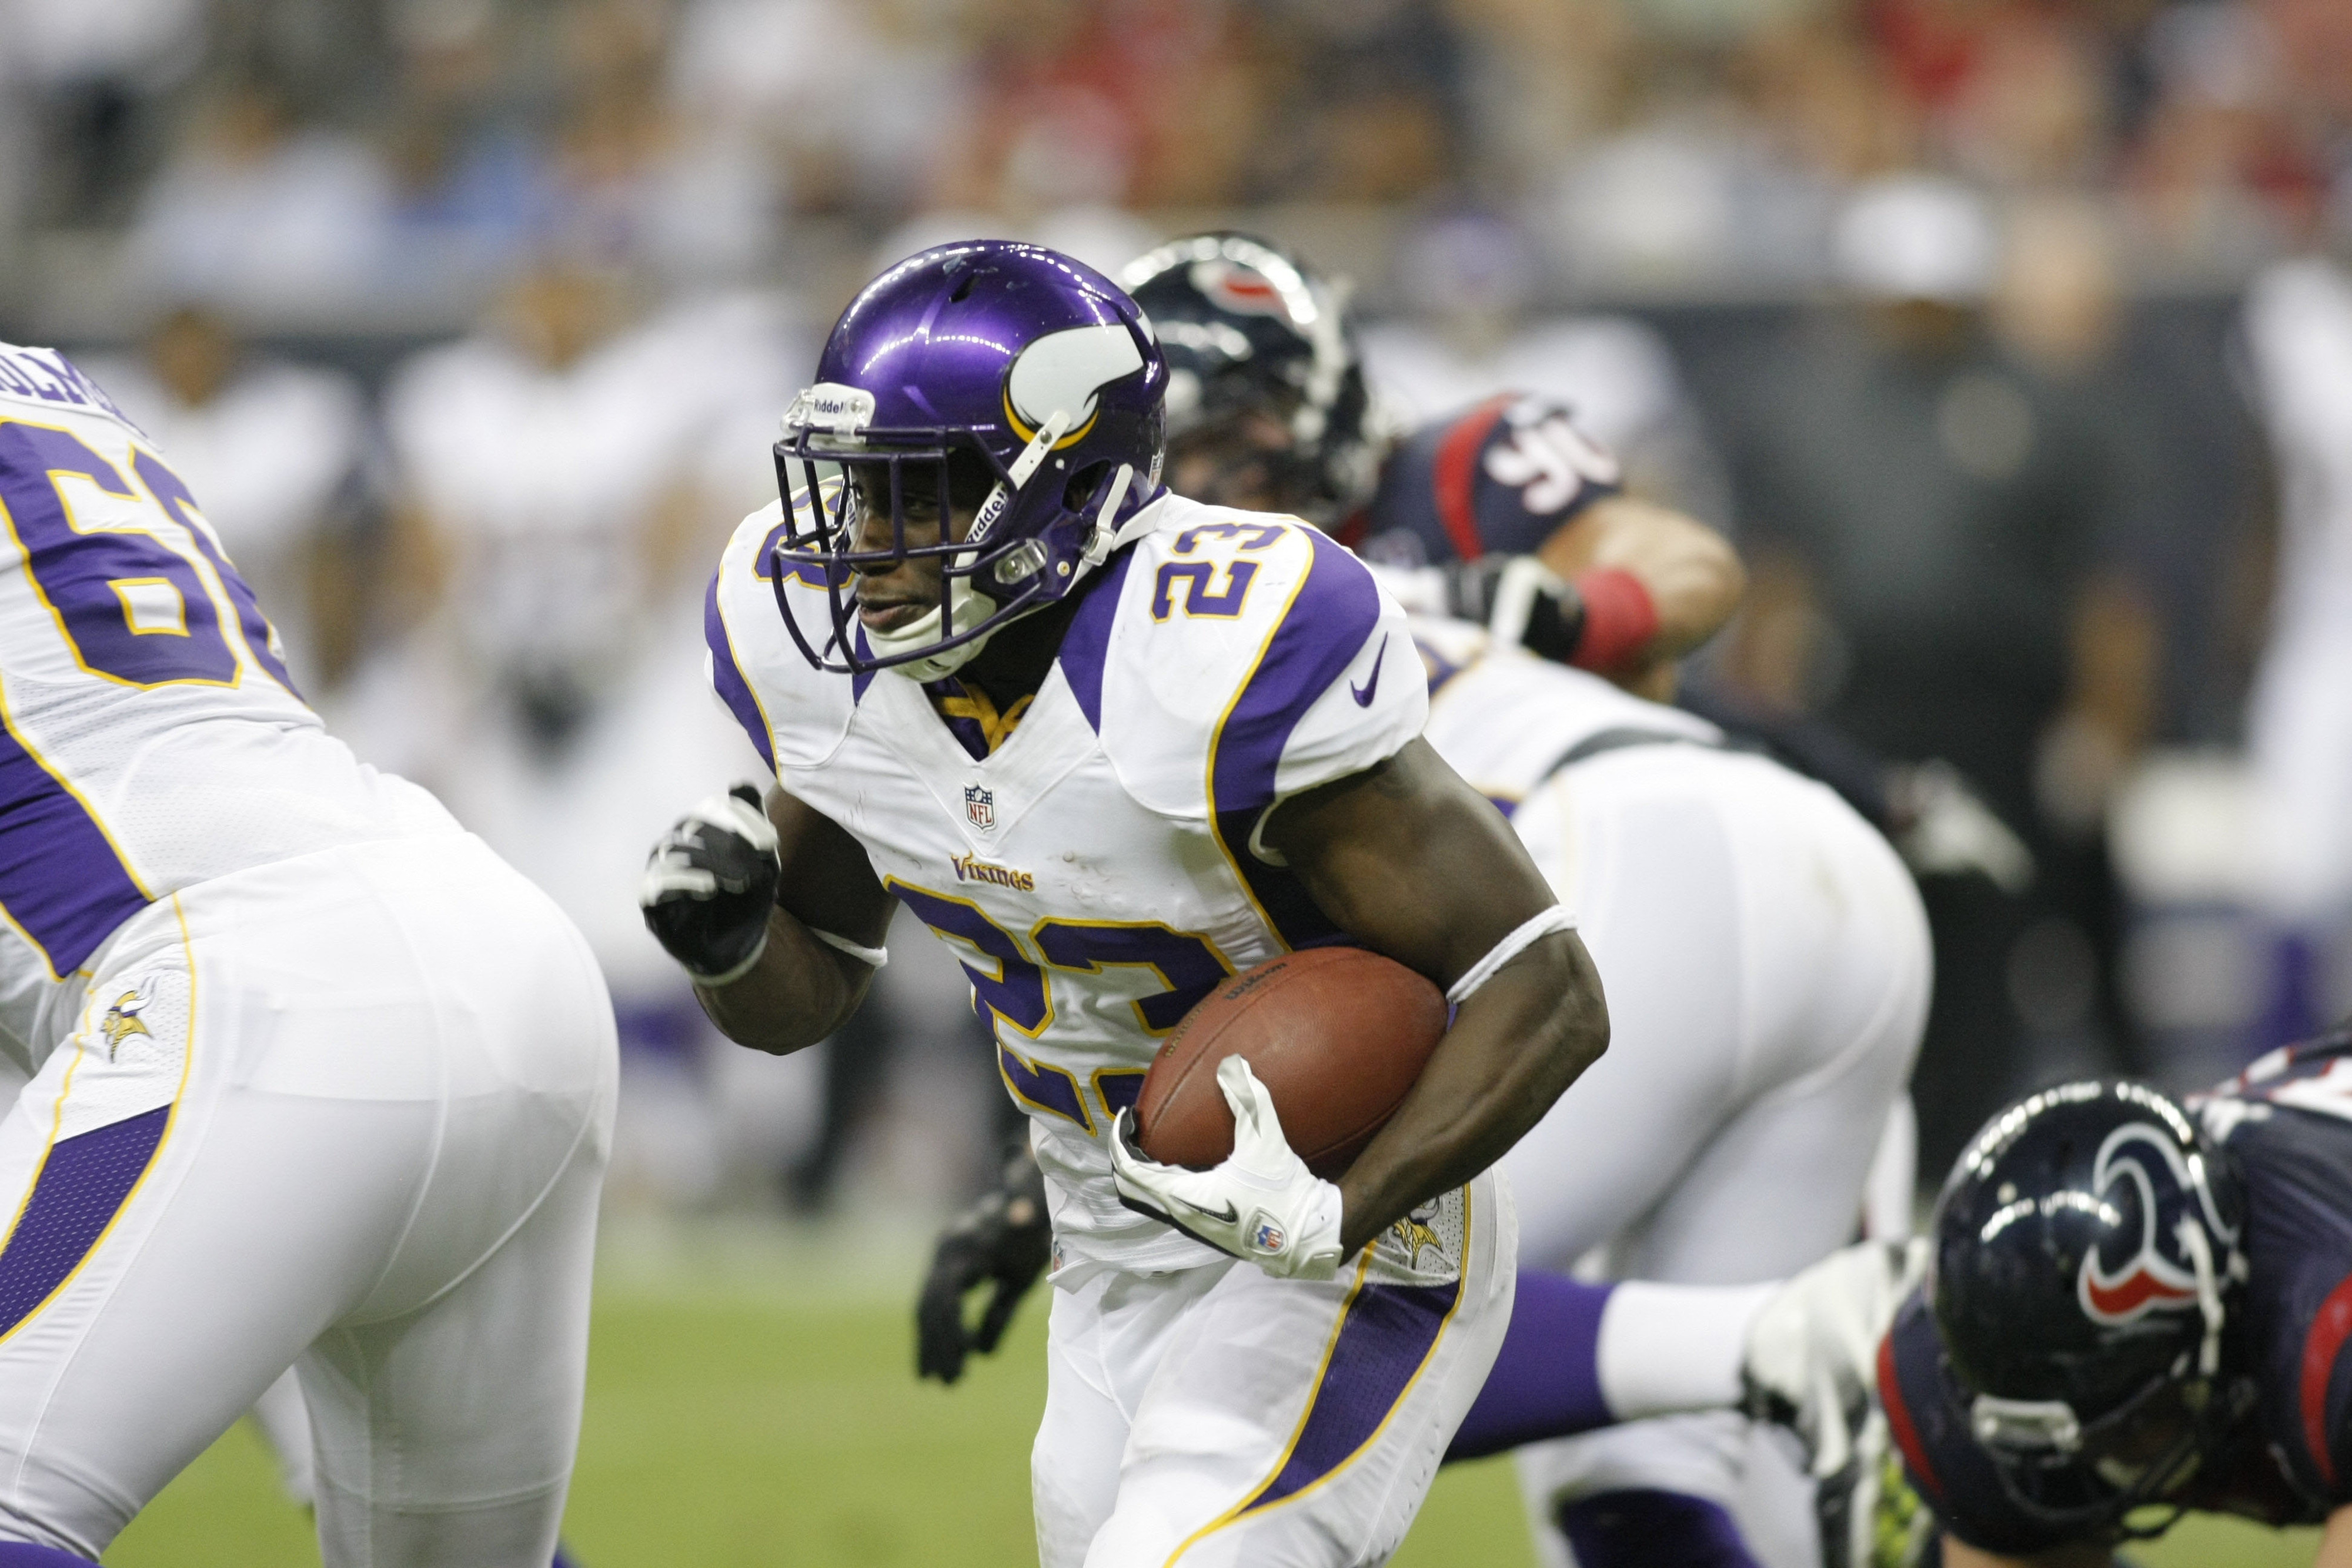 Running back Jordan Todman, and others, will learn in the next few hours whether or not they've made the Vikings' final 53-man roster. (Mandatory Credit: Brett Davis-US PRESSWIRE)